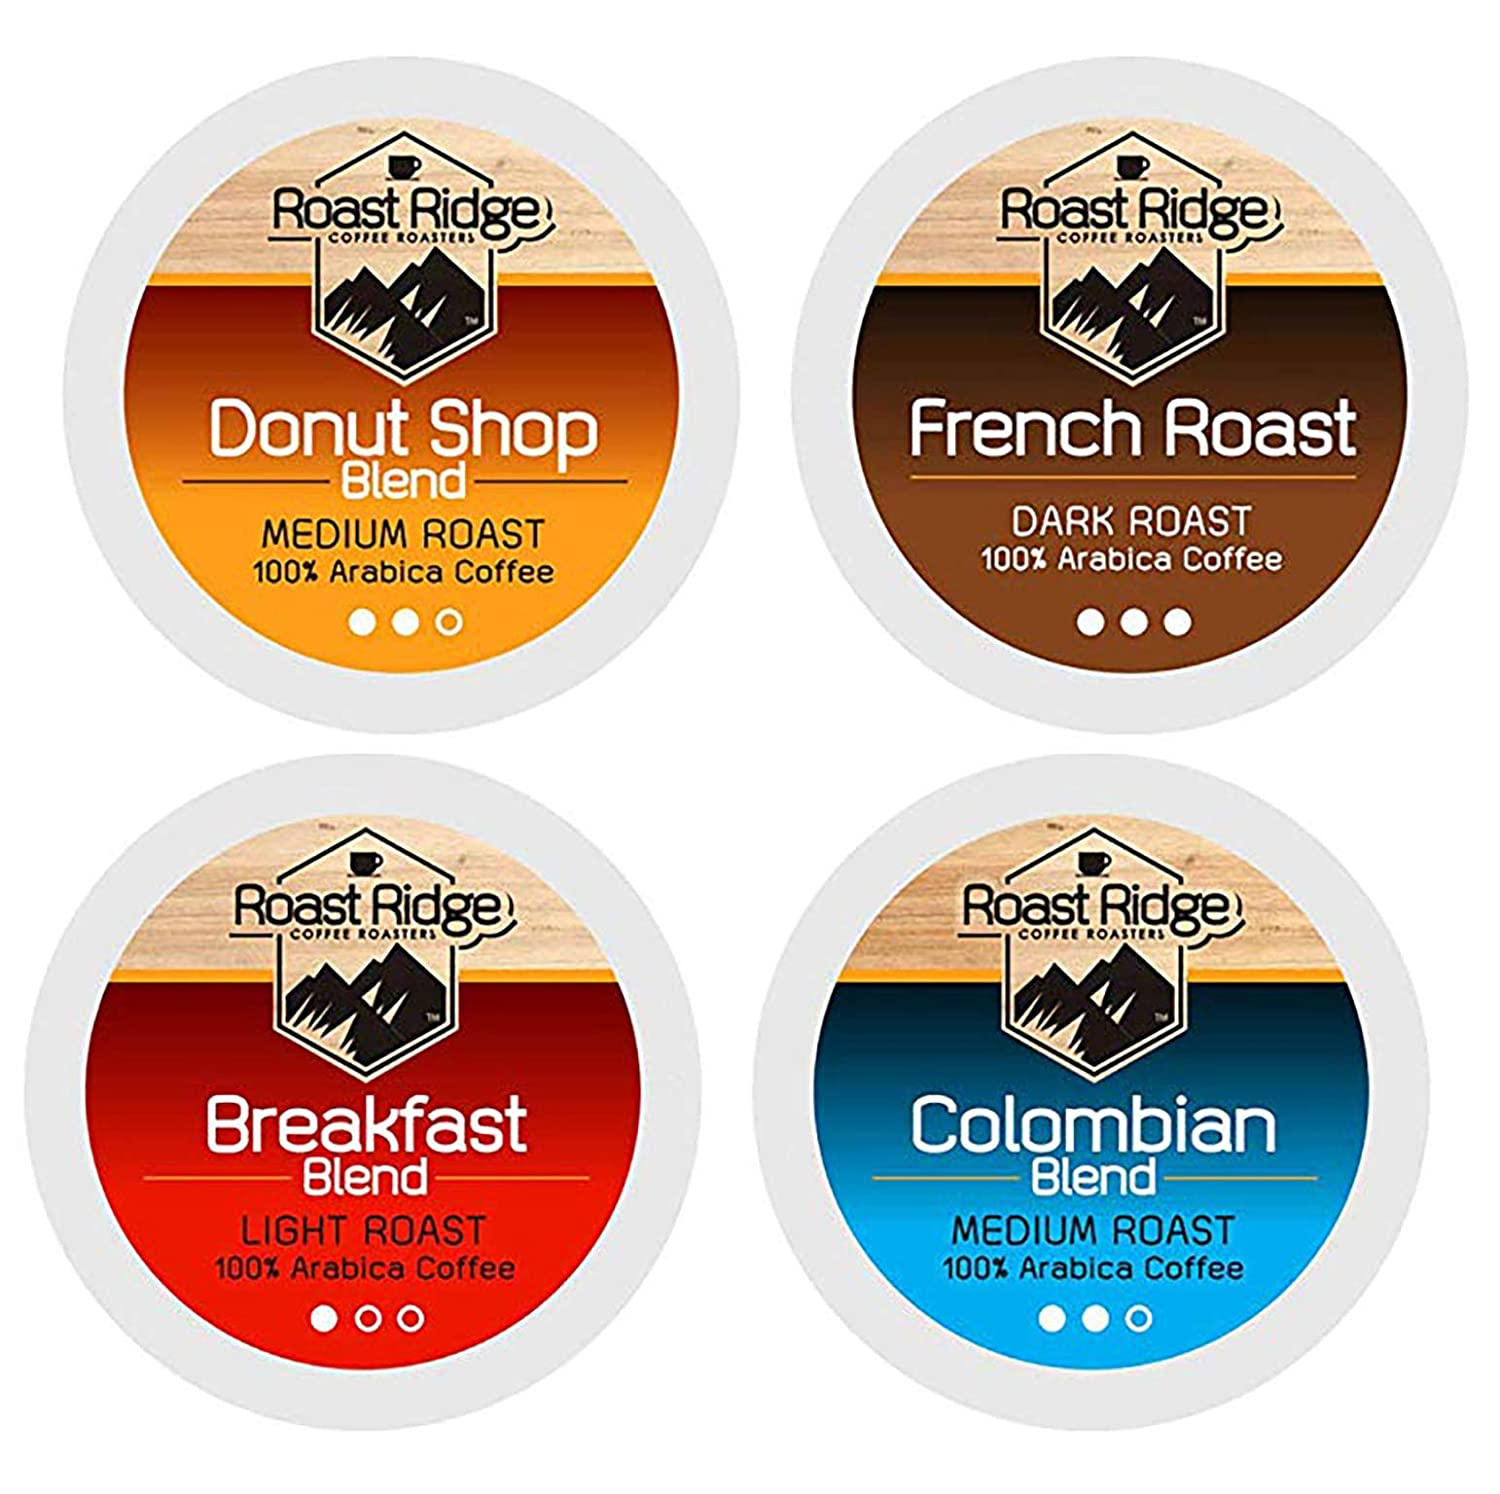 Roast Ridge Coffee Roasters Variety Pack Single Cup Coffee 100 Count Hot Beverage Cups, Compatible with Most Single-Serve Brewing Systems that Accept K-Cups, Including Keurig 2.0